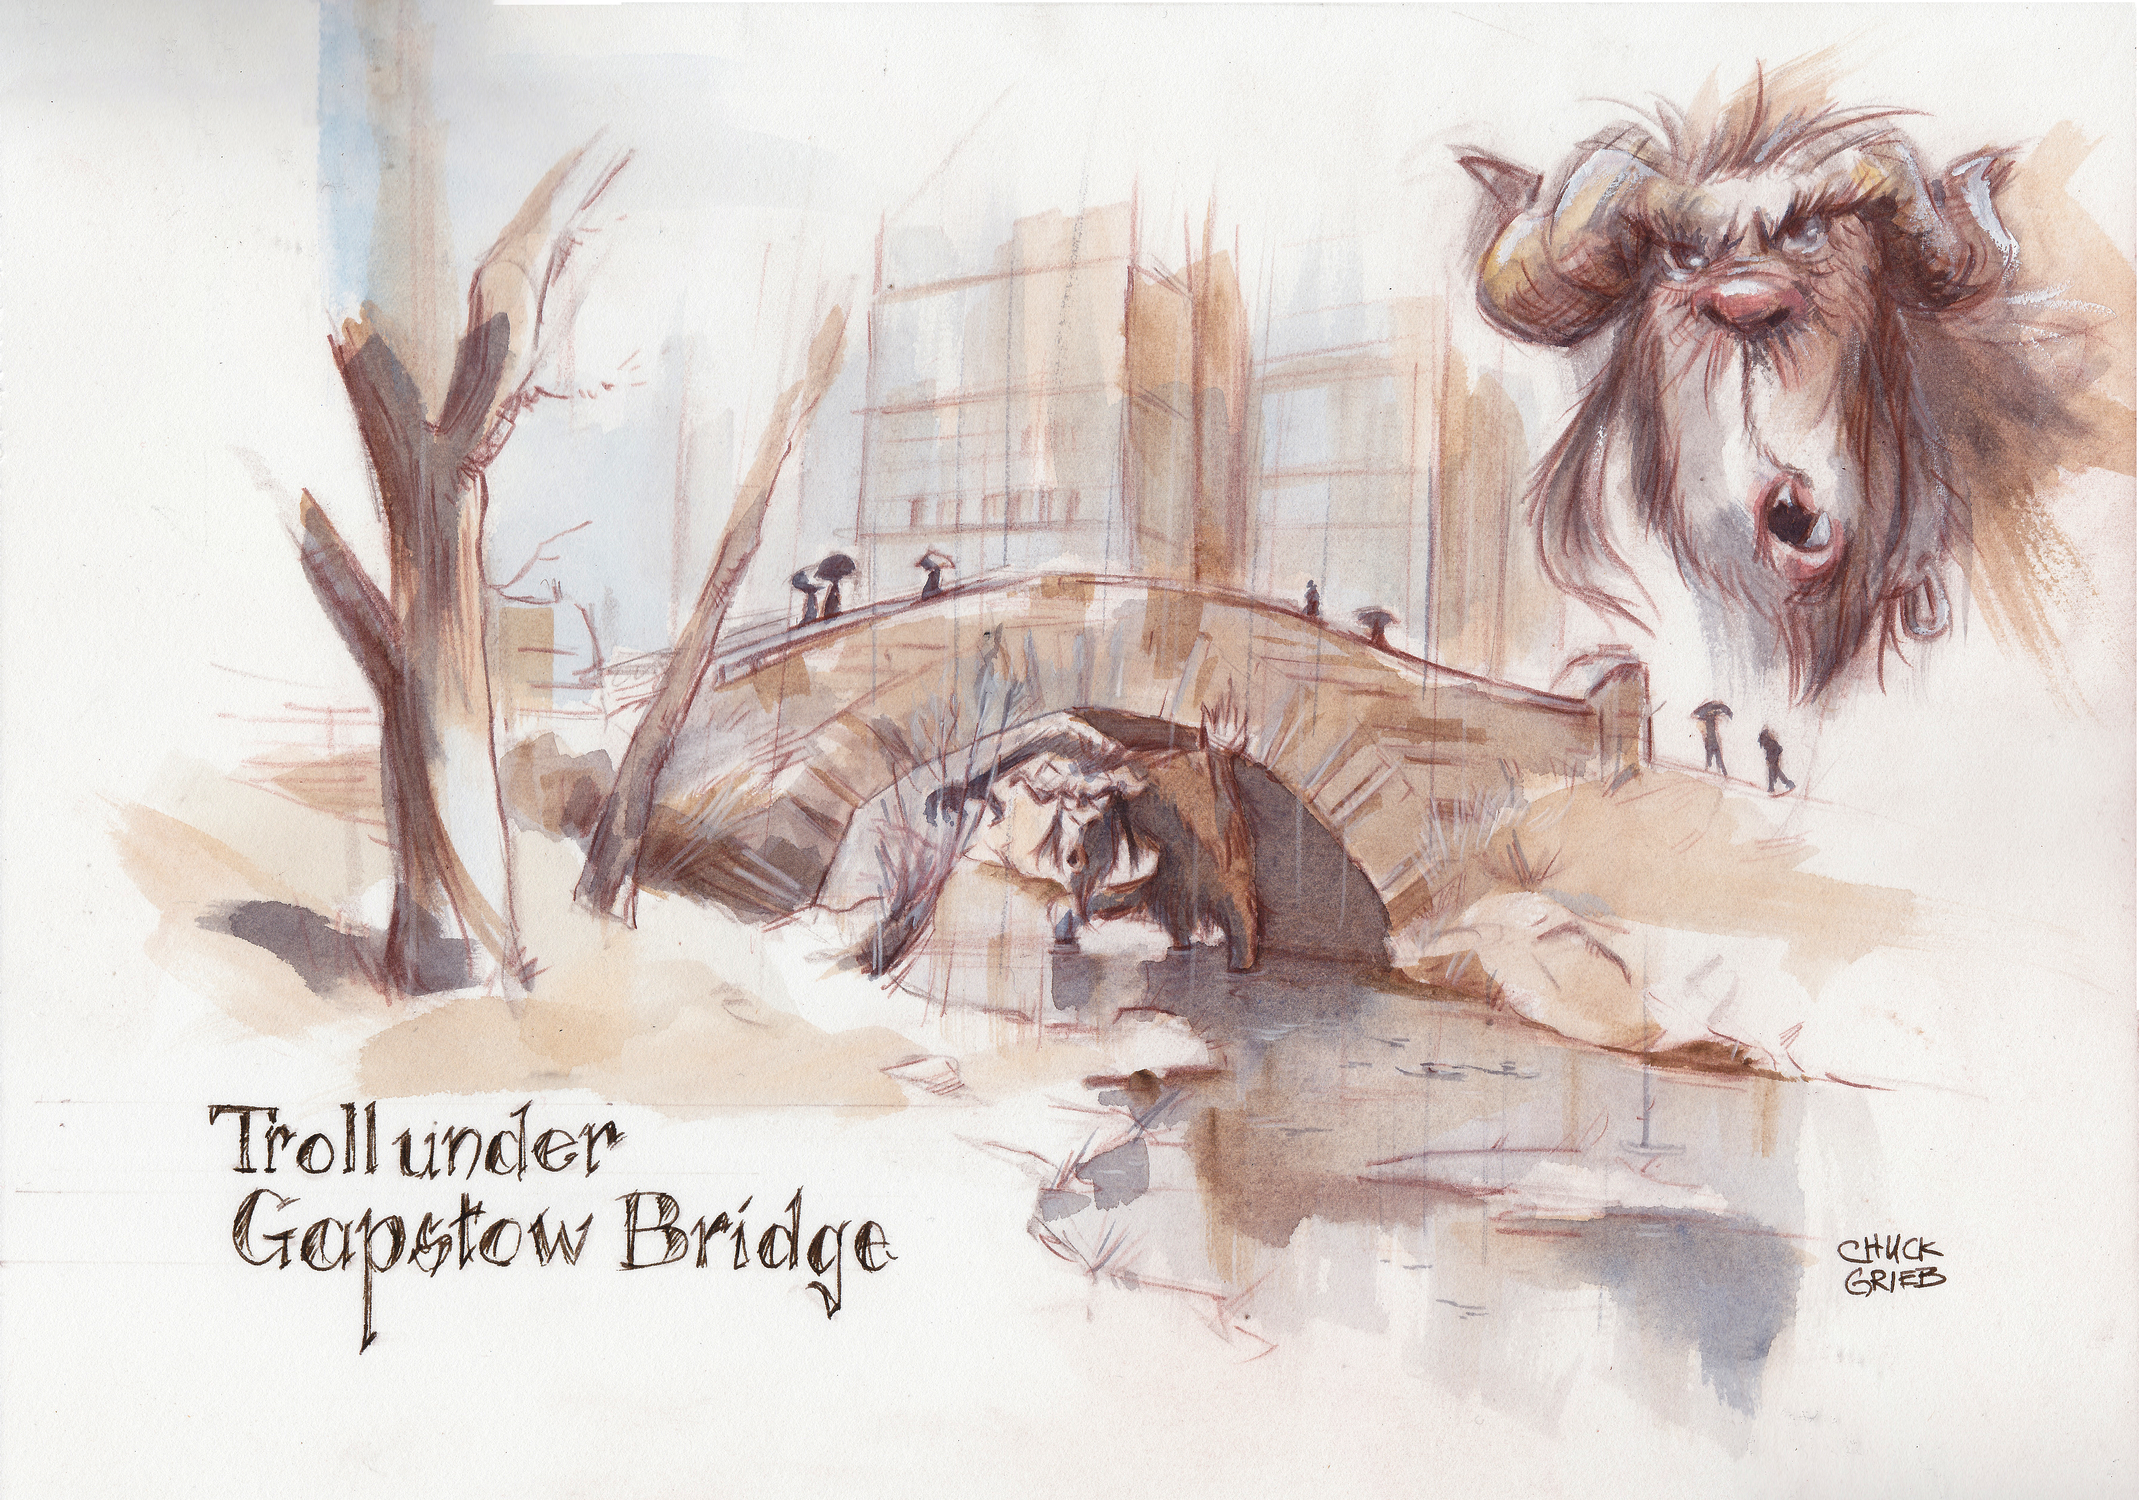 Troll Under Gapstow Bridge Artwork by Chuck Grieb